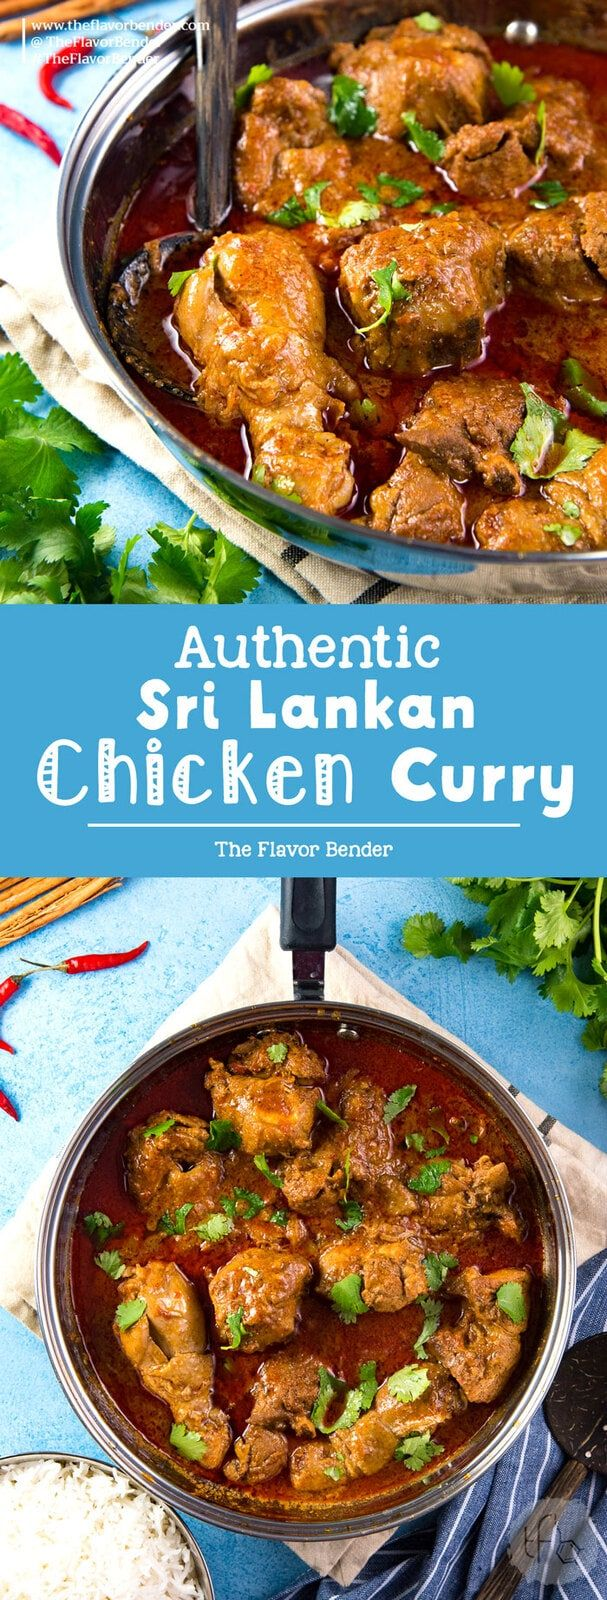 The Best Sri Lankan Chicken Curry - The Flavor Bender